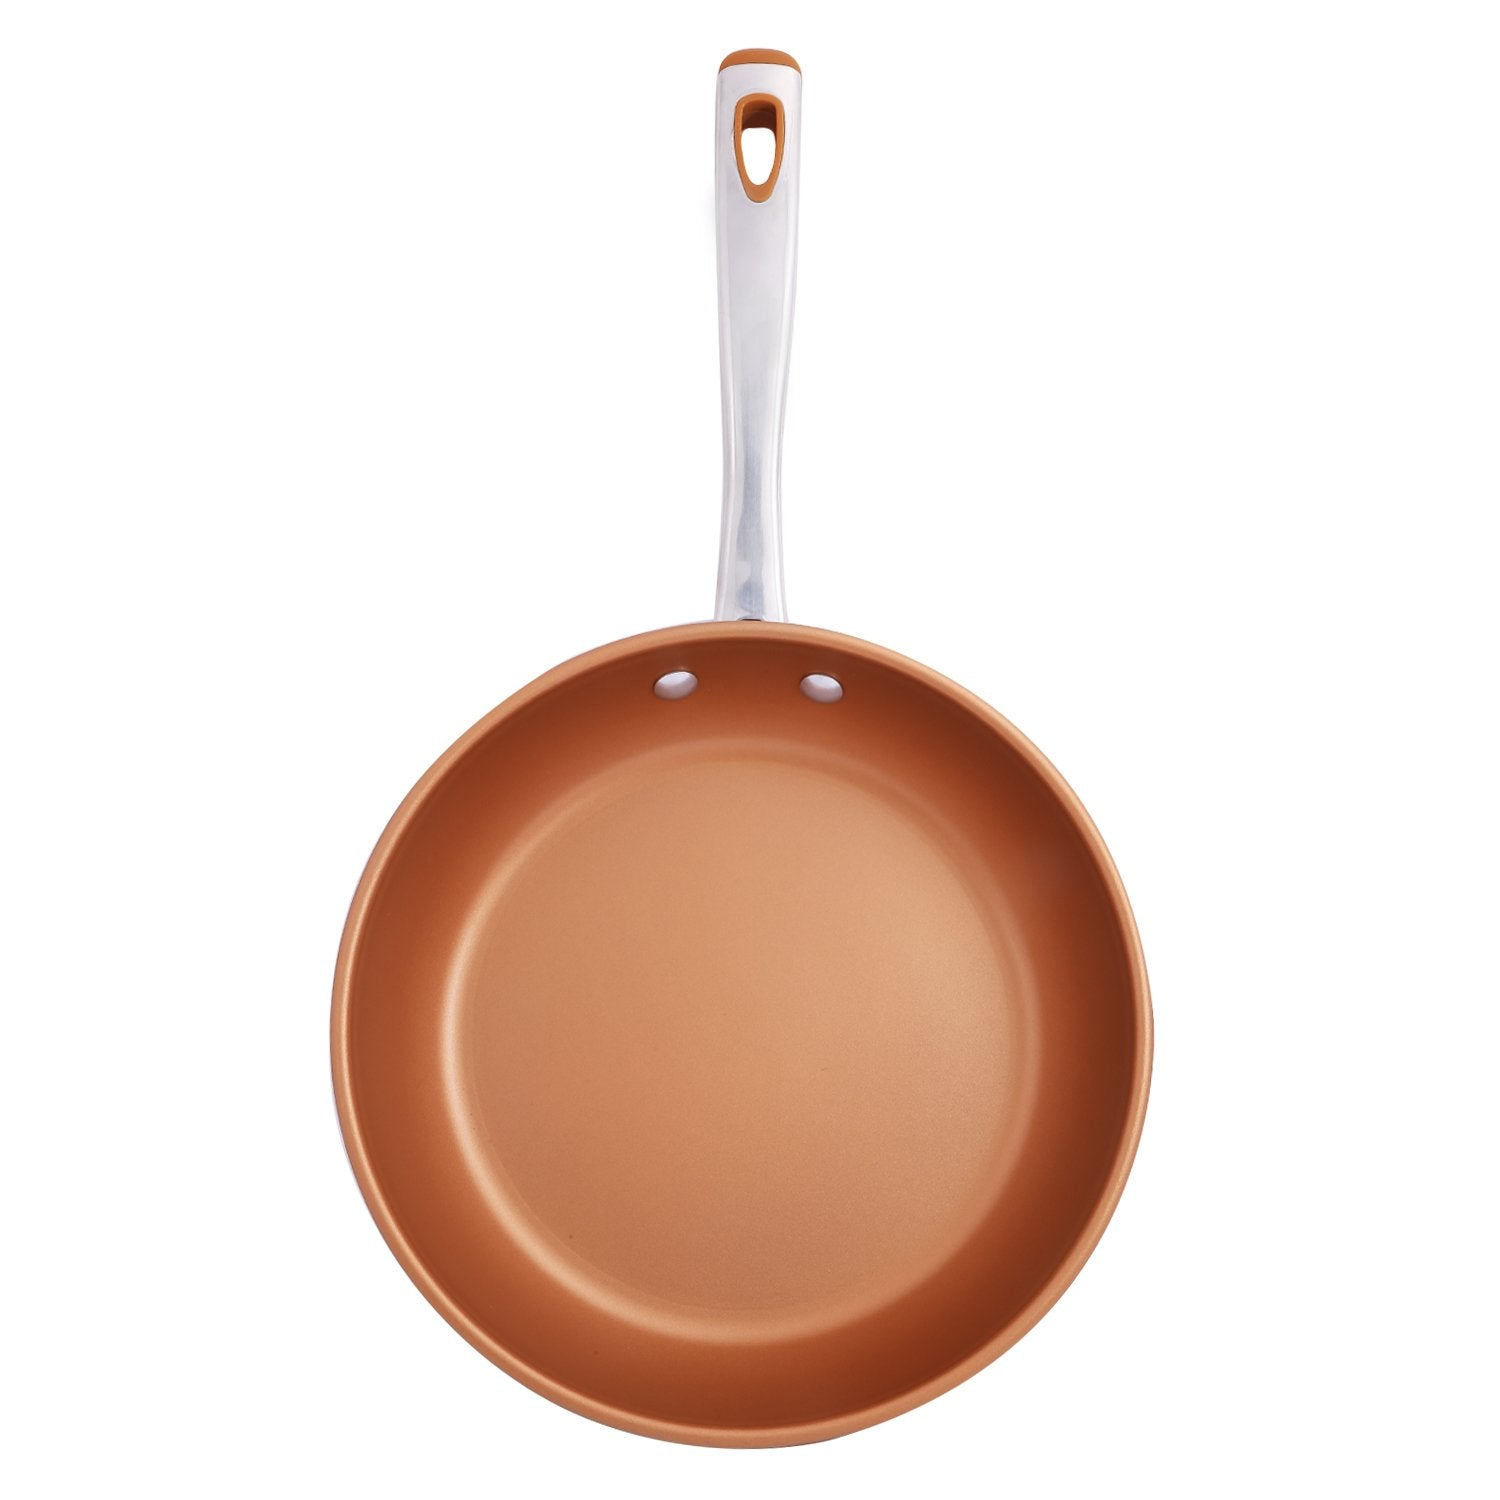 Prism Non-Stick Frypan 24cm, Copper [Induction & Gas Compatible] - PotsandPans